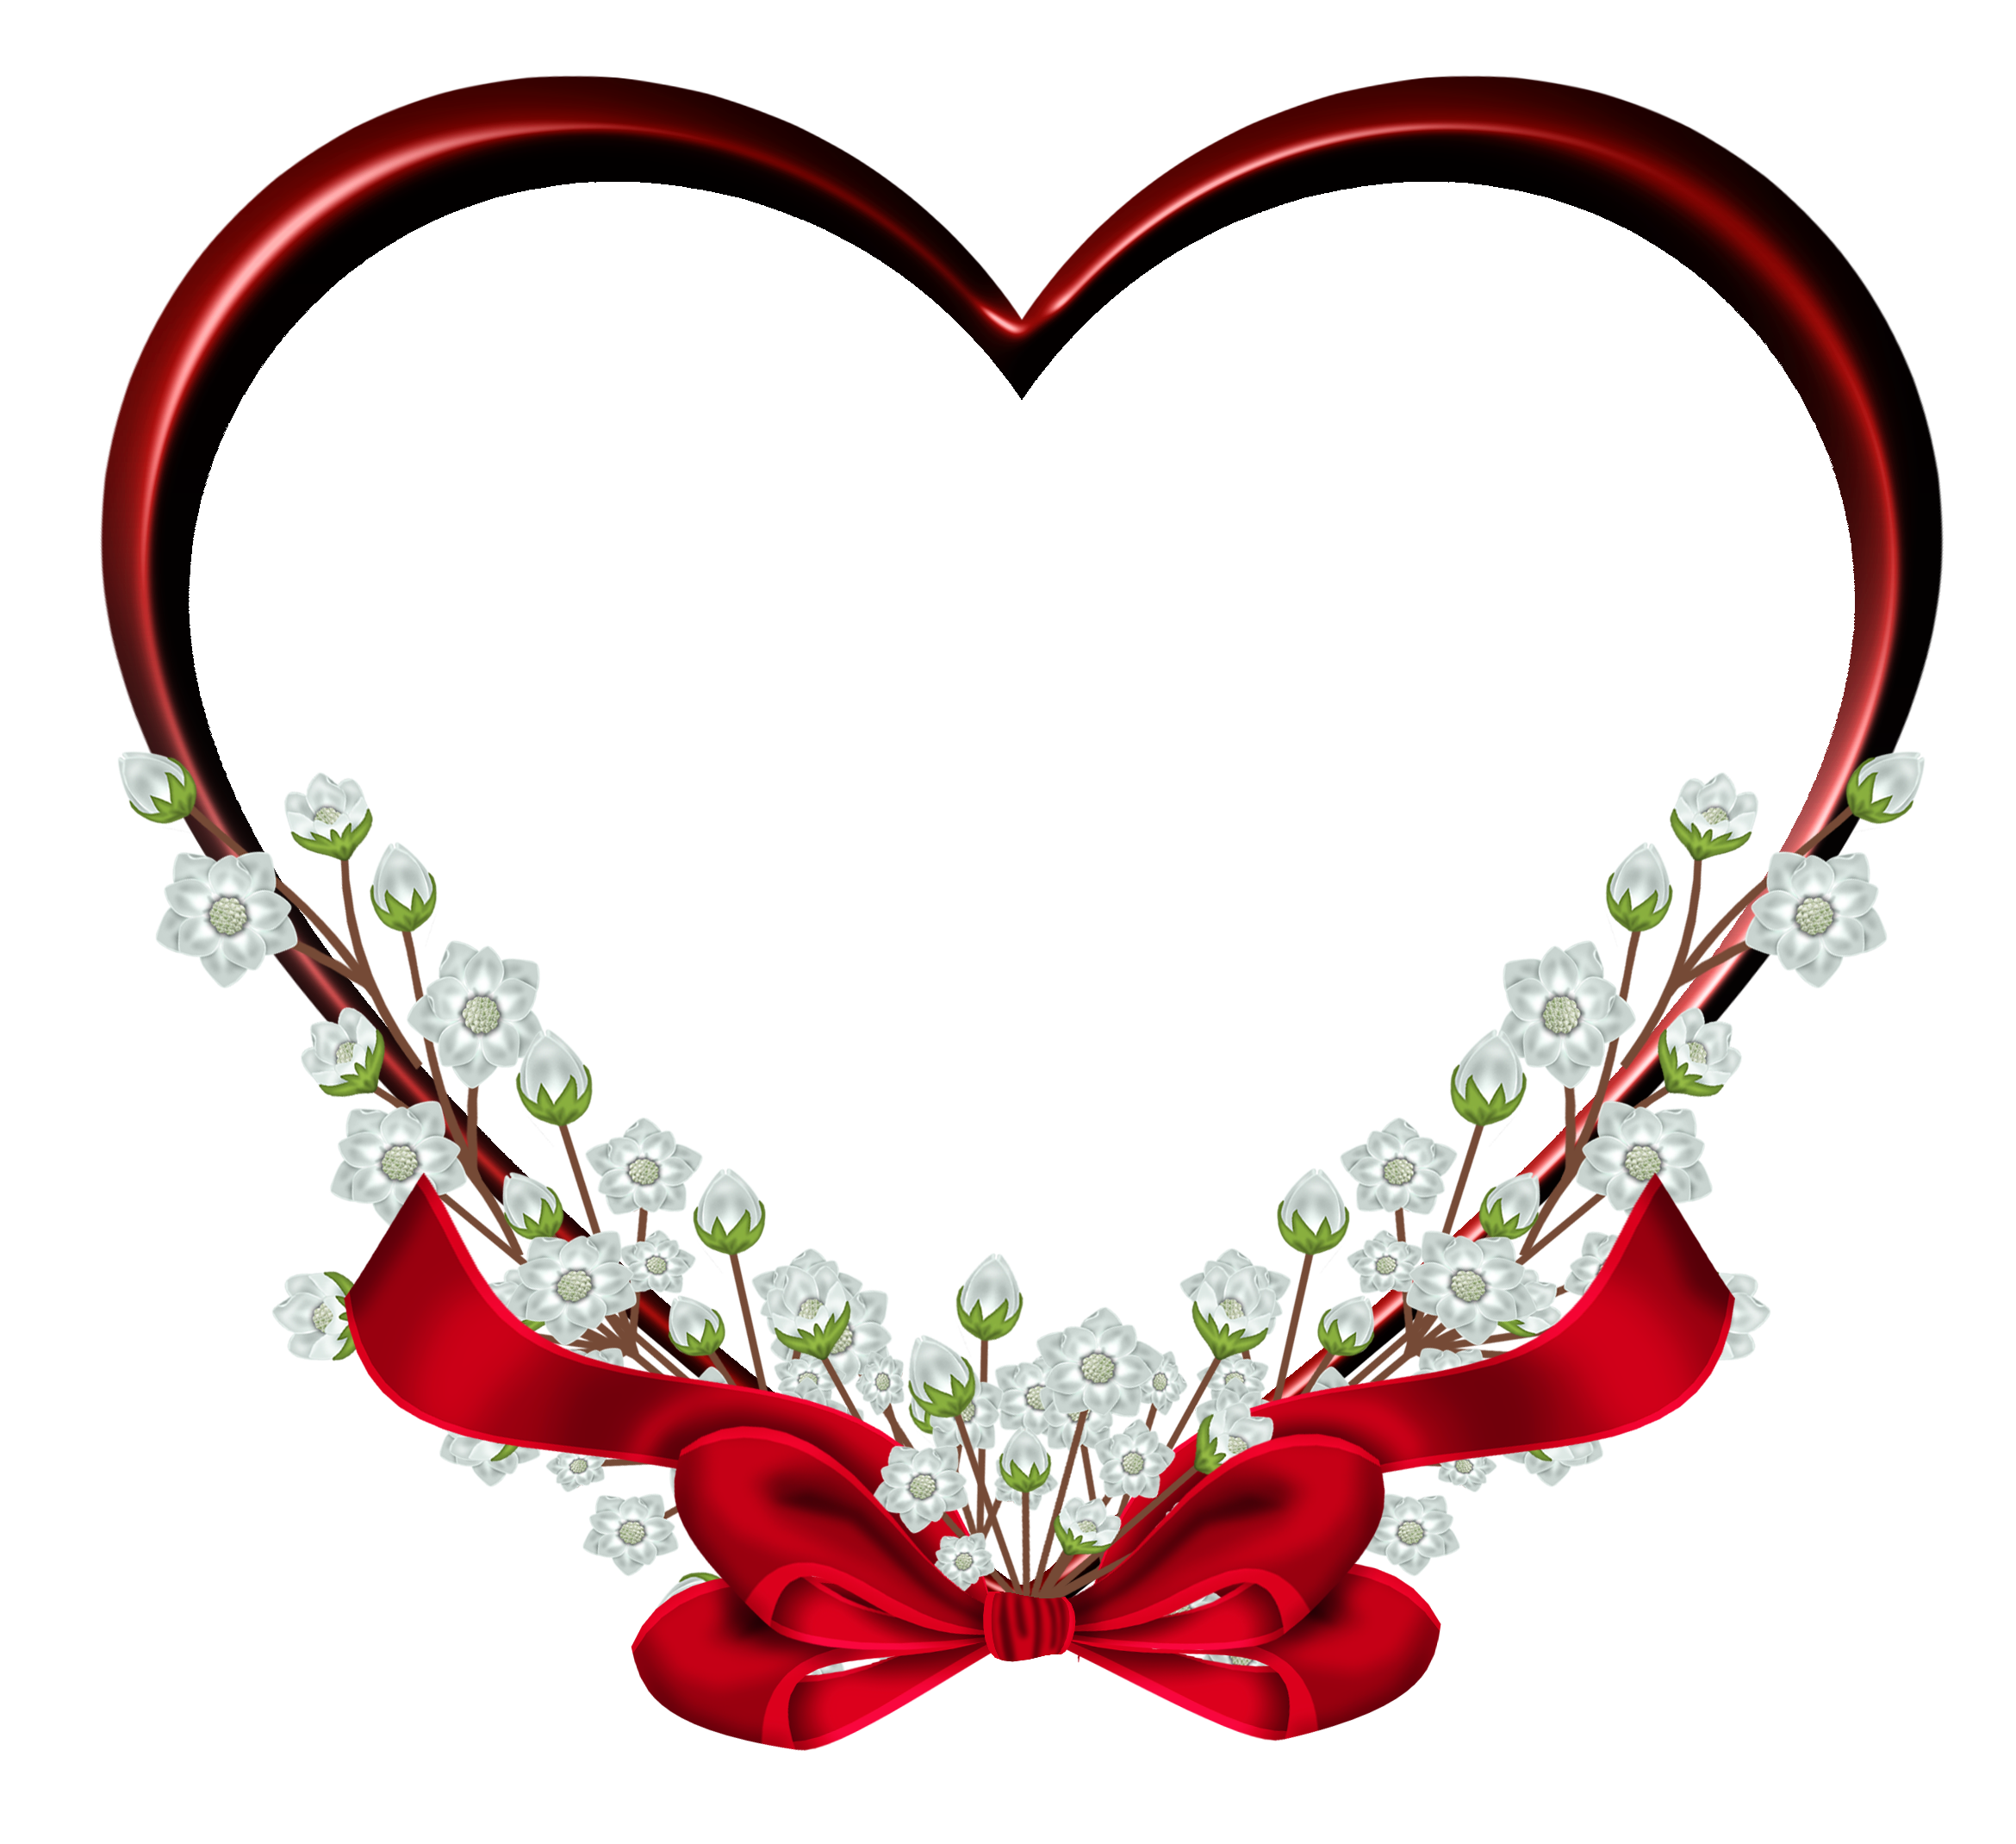 Love clipart heart frame #3 - Love Clipart PNG